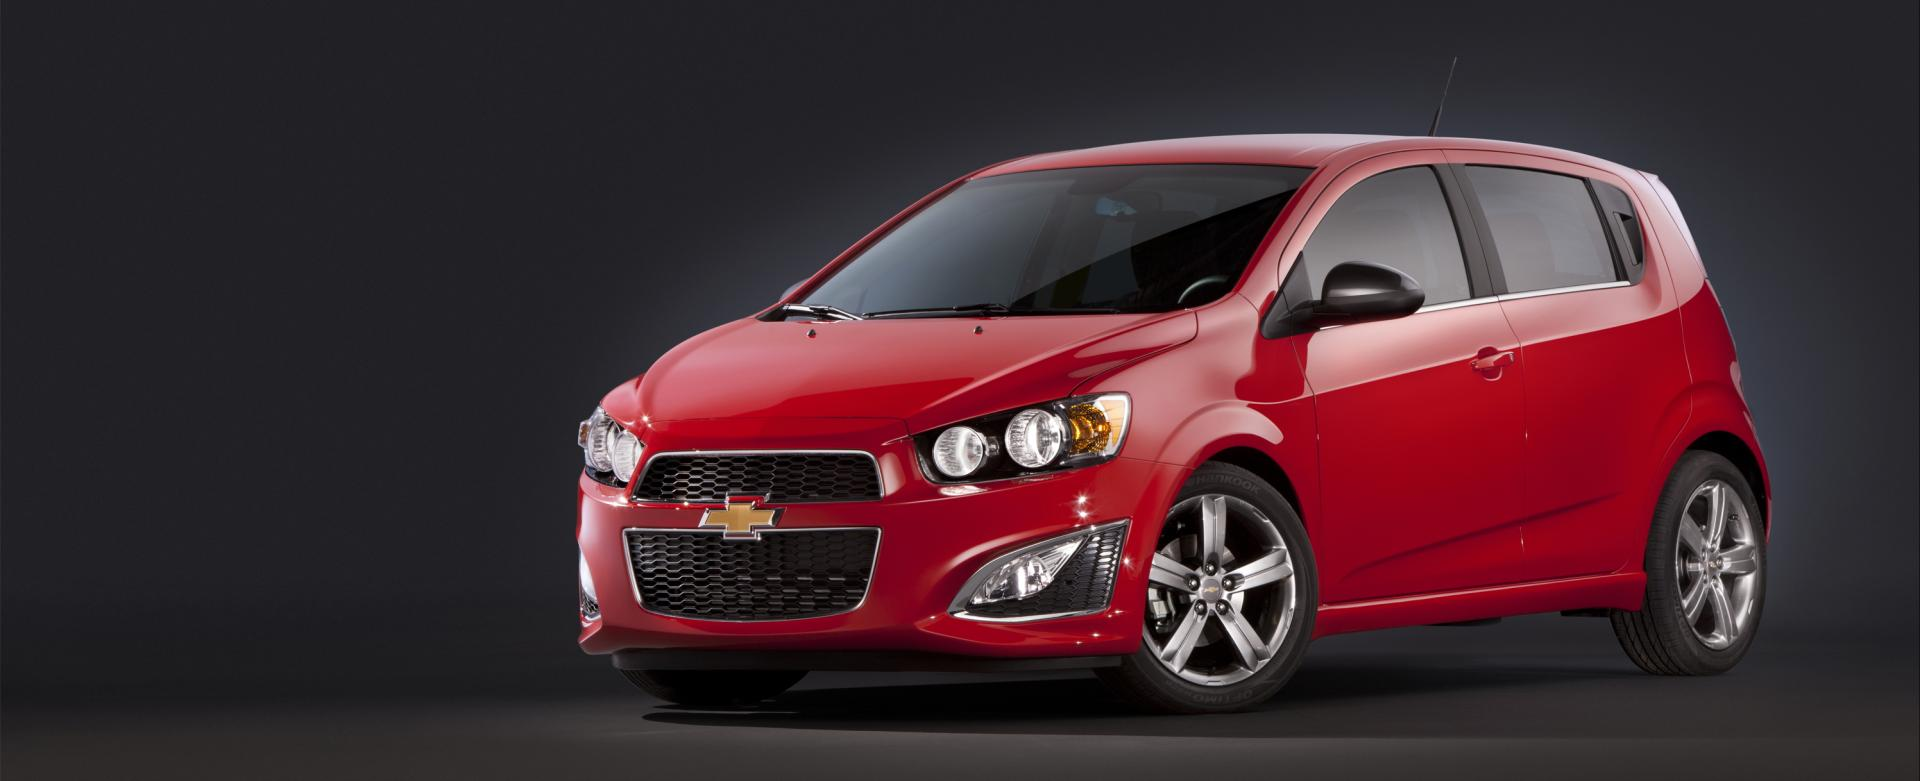 Chevrolet Sonic Owners Manual: Radio Frequency Statement